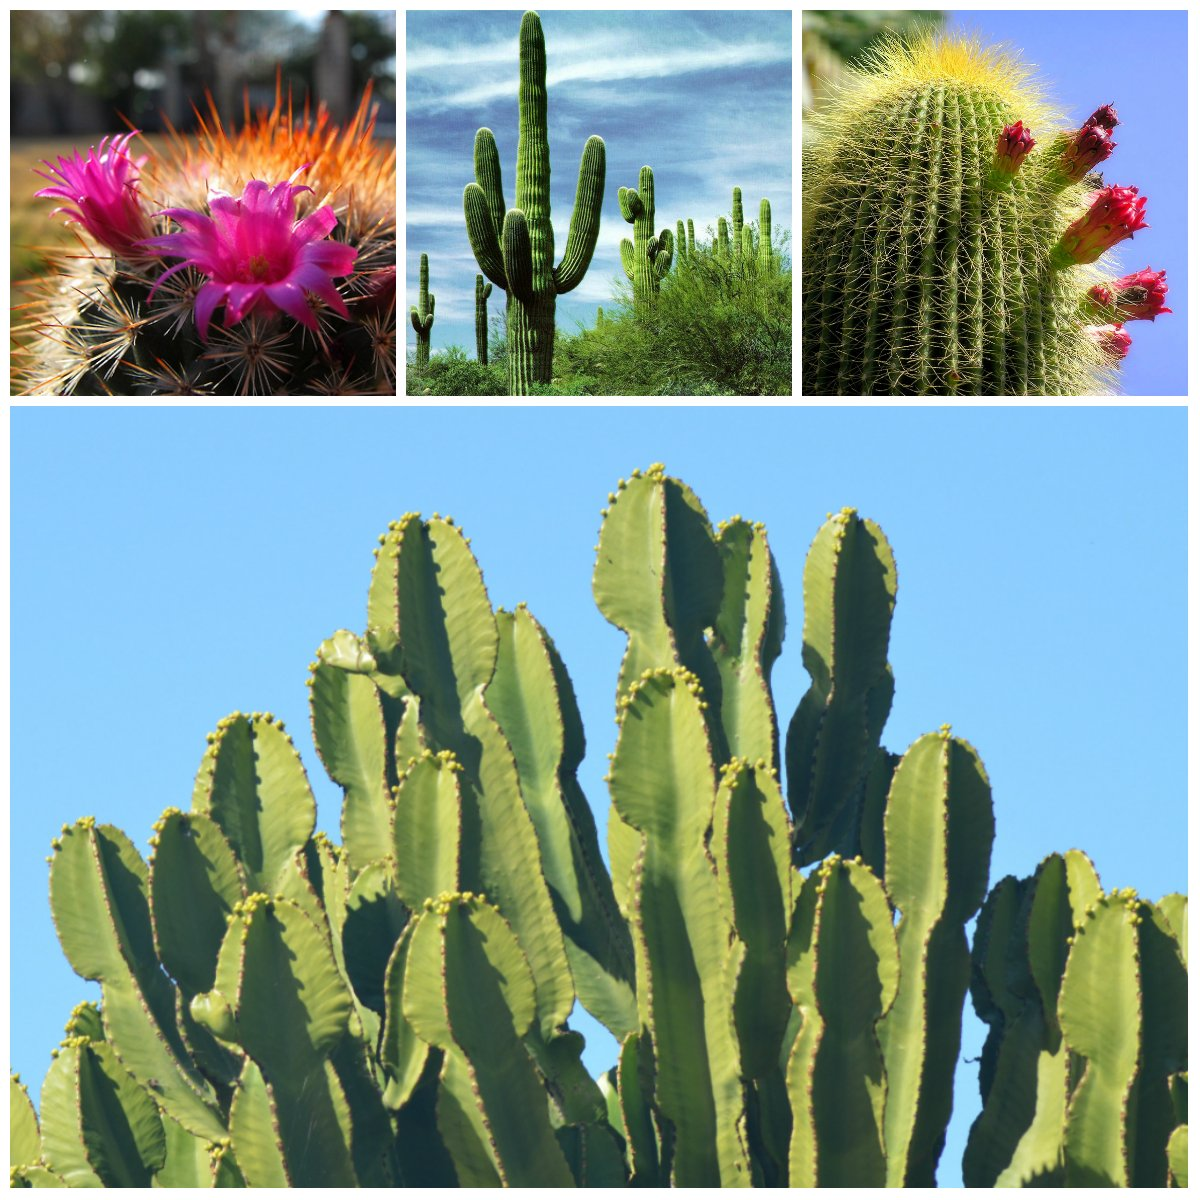 6 Interesting Facts About Cactuses